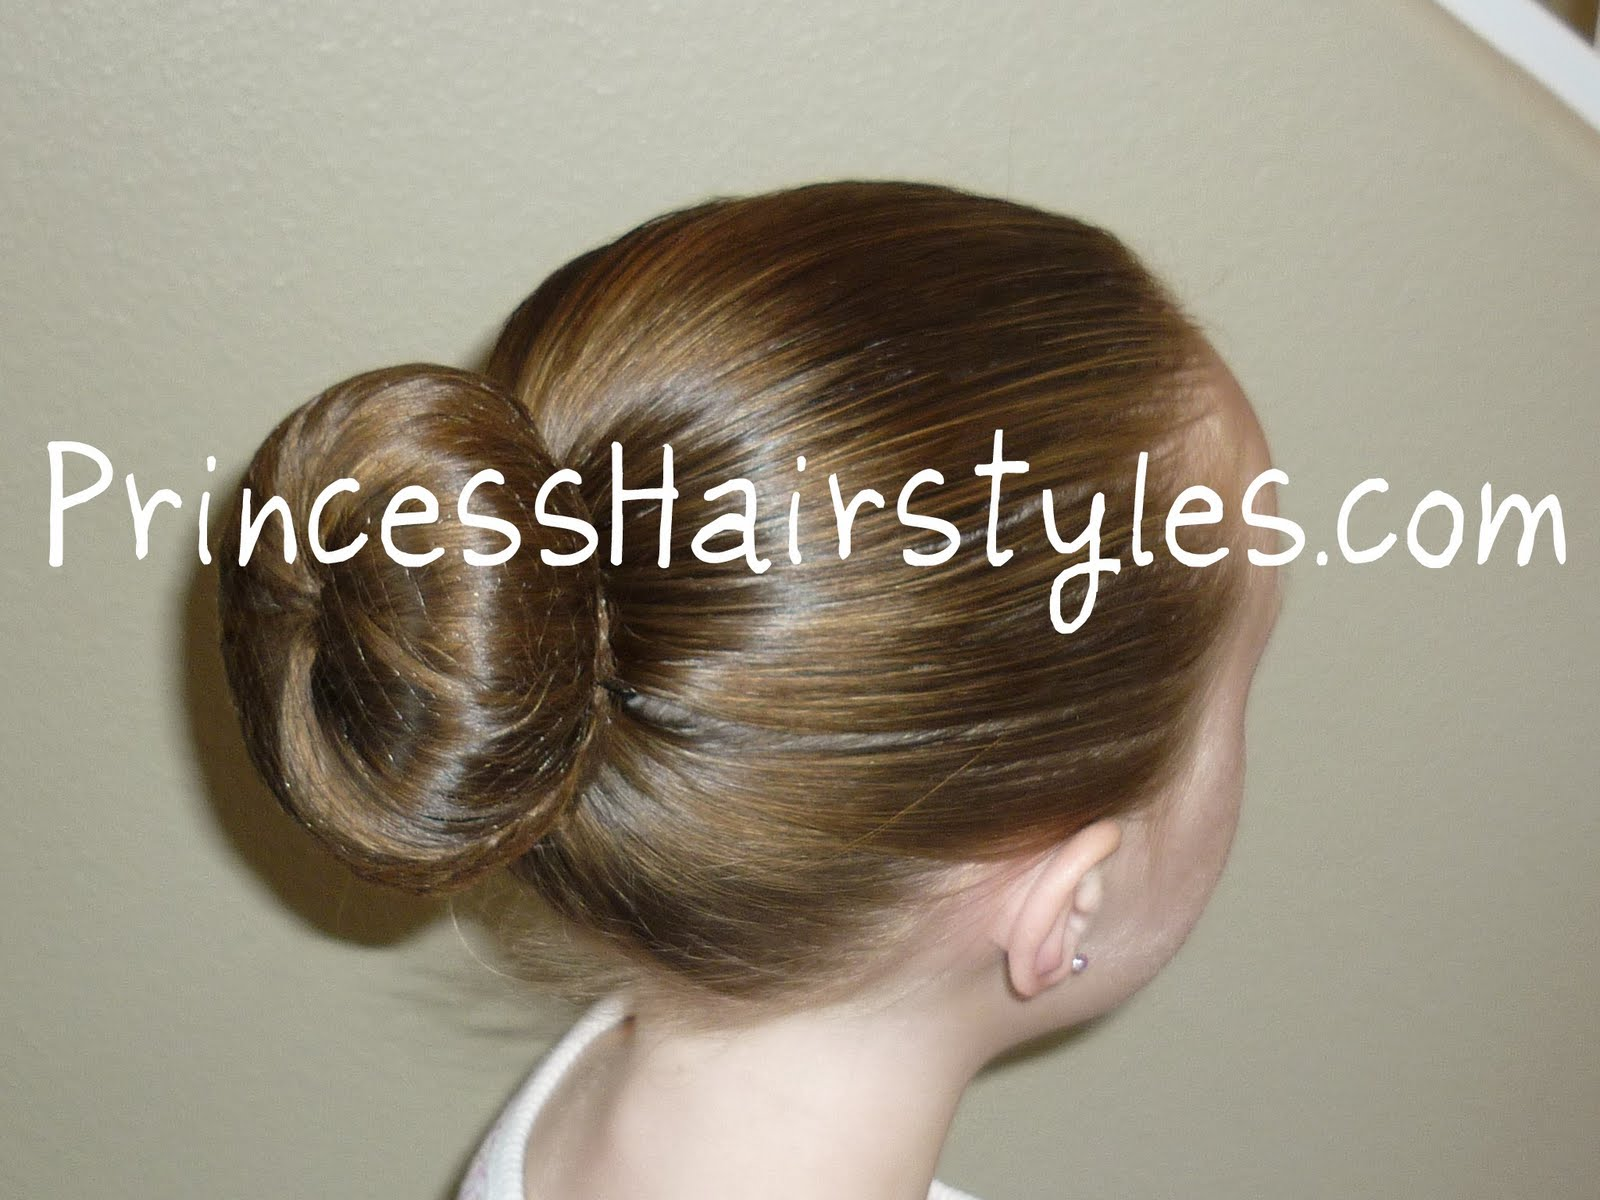 The Perfect Ballet Bun - Hairstyles For Girls - Princess Hairstyles